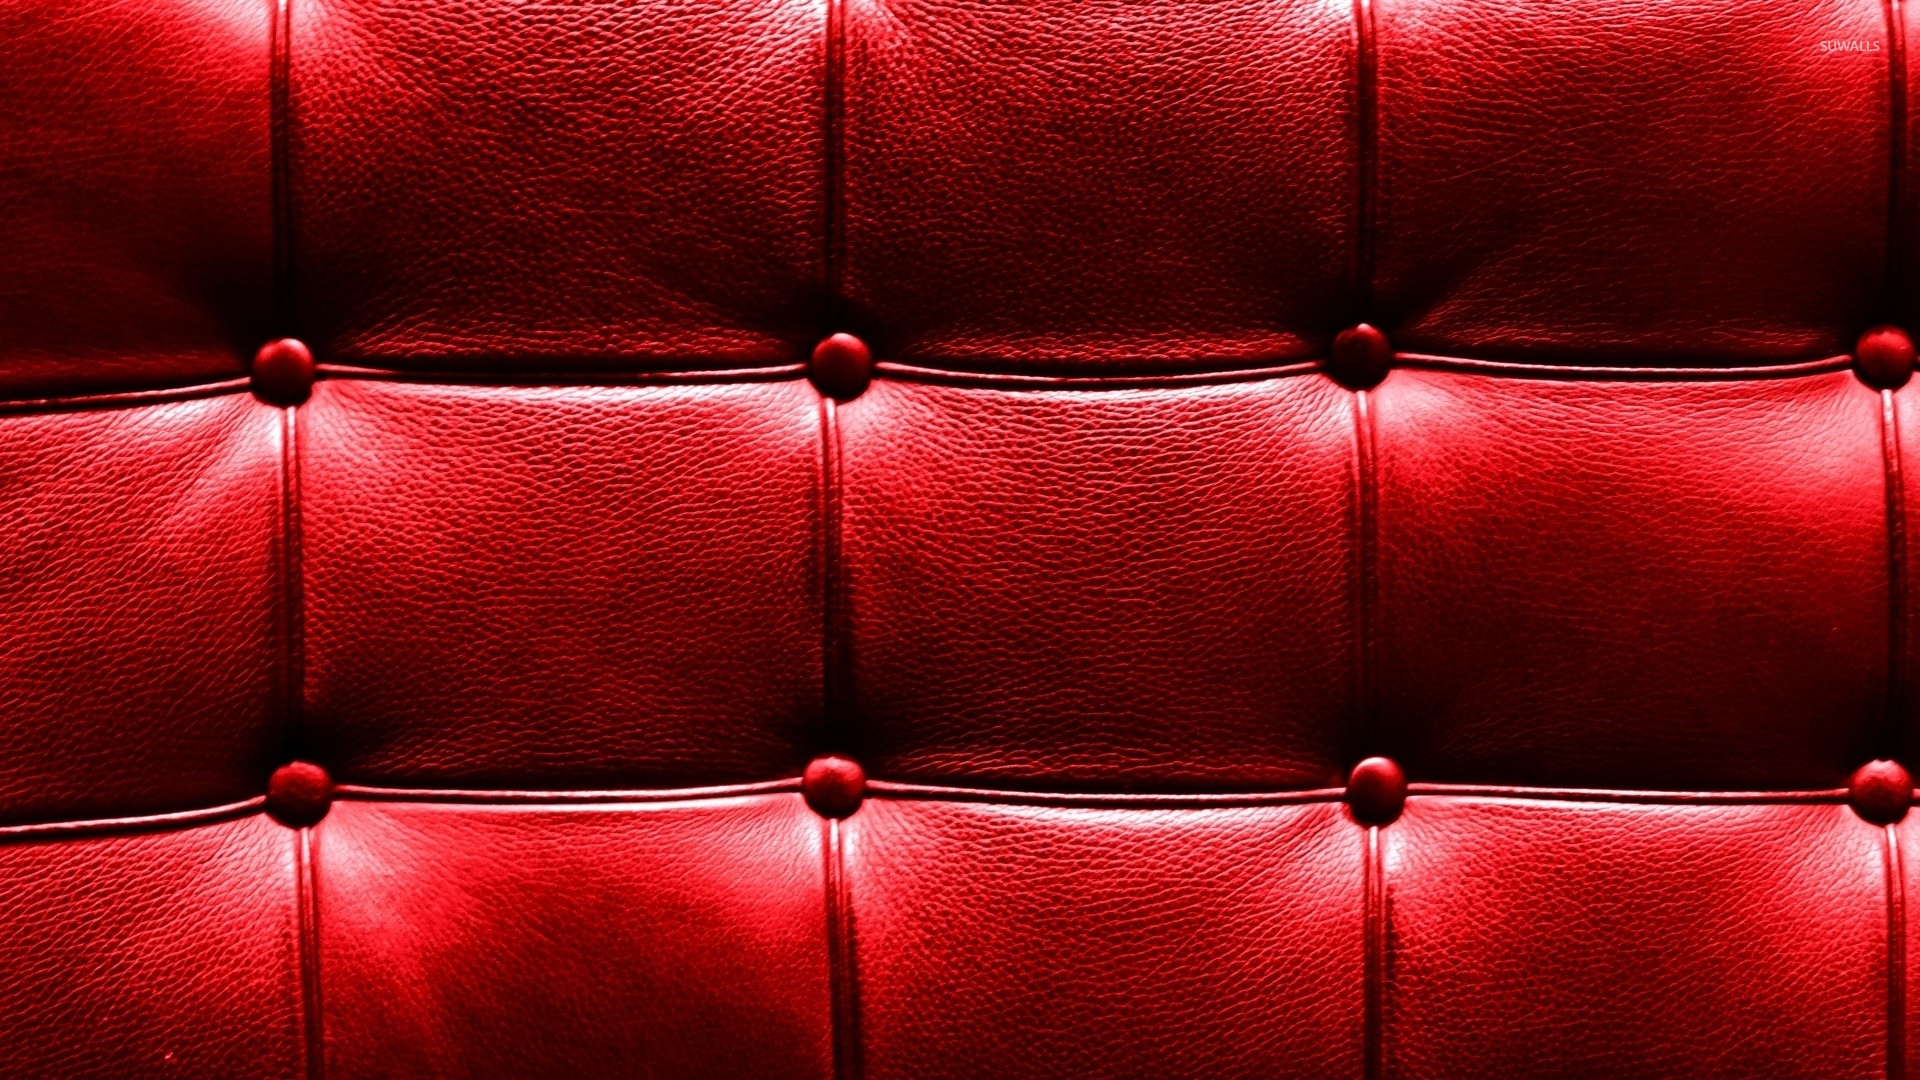 Red leather pattern wallpaper